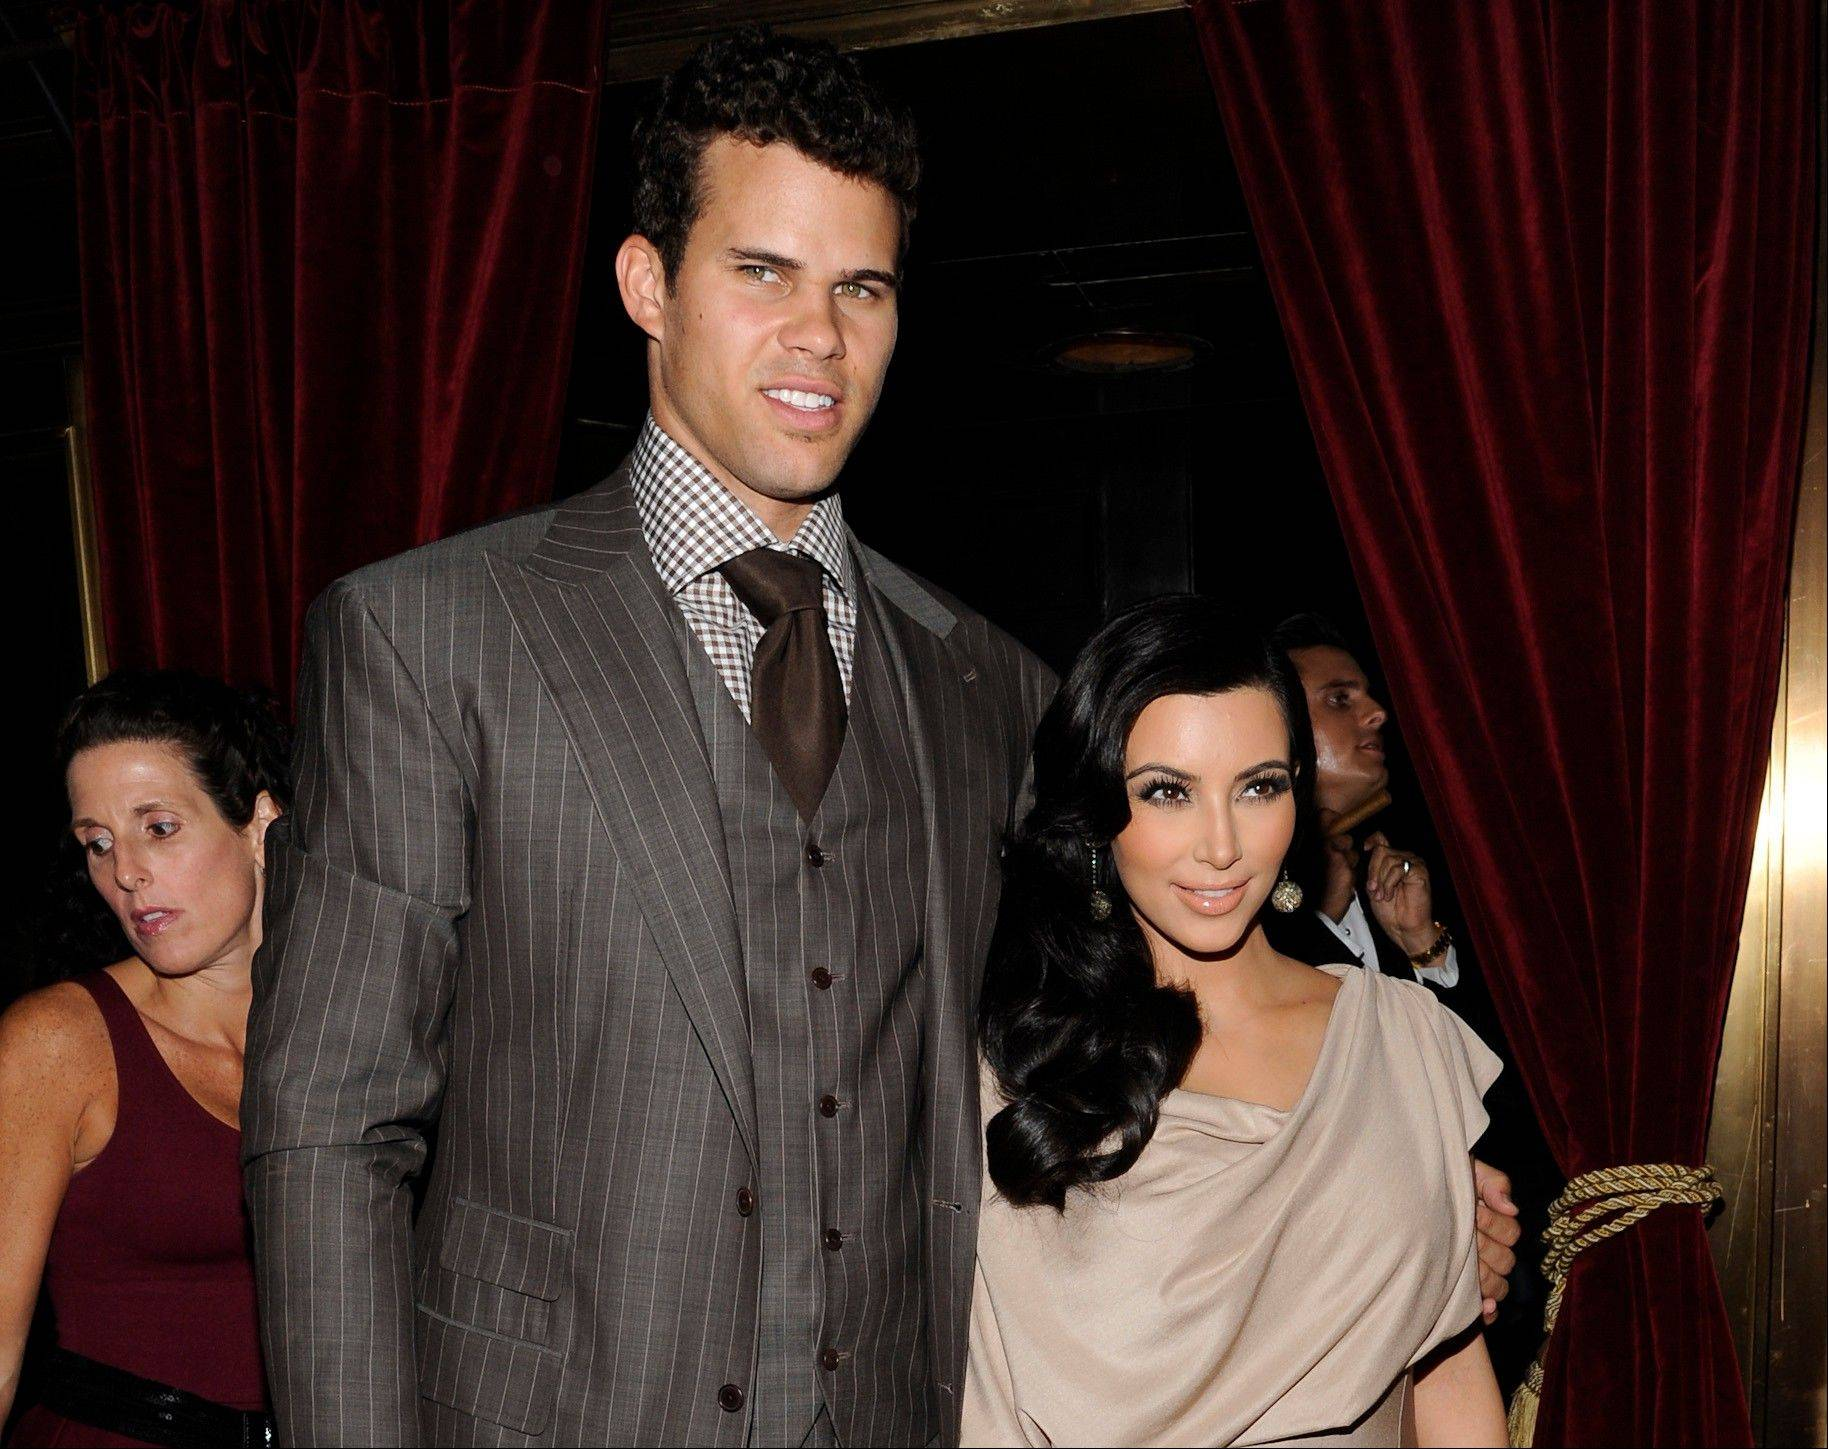 The divorce case of Kris Humphries and Kim Kardashian returns to court on Friday.